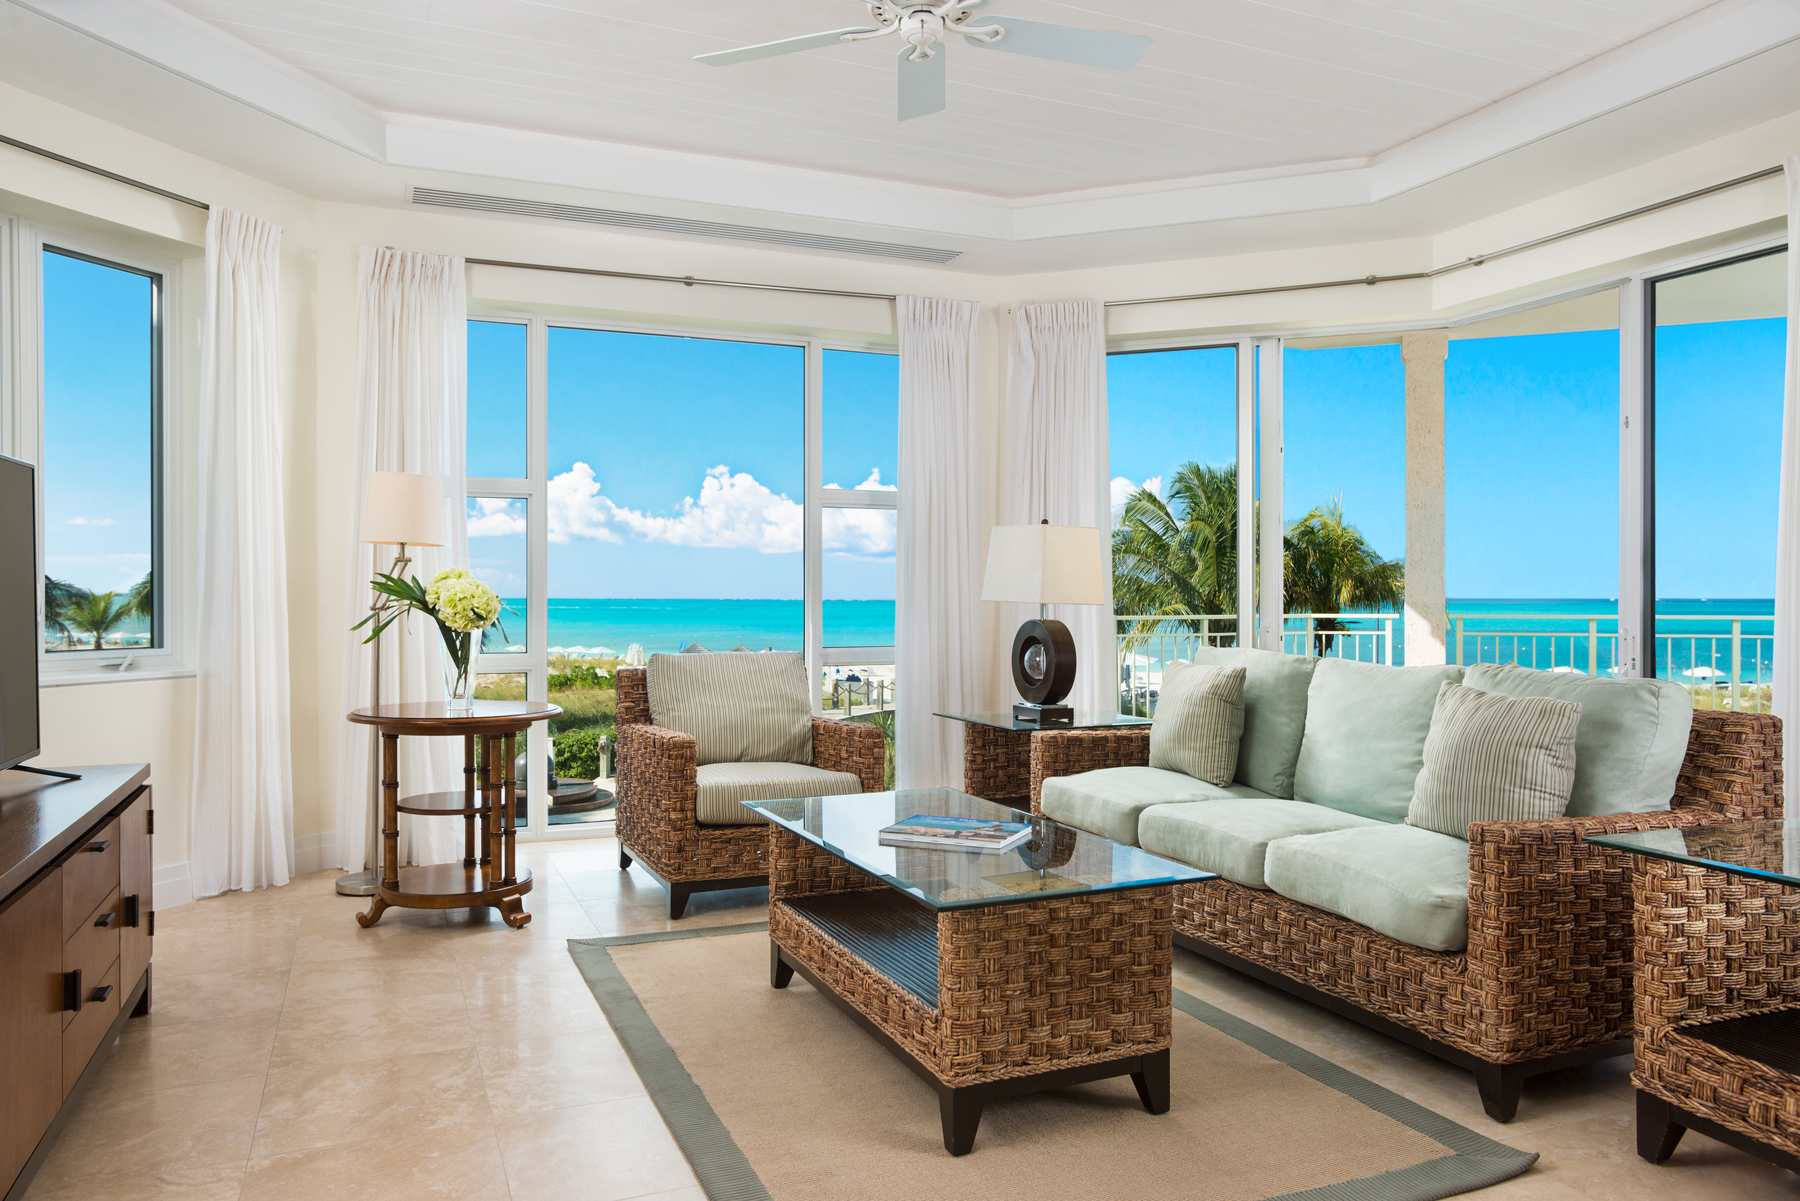 Condominium for Sale at West Bay Club - Suite 207 West Bay Club, Grace Bay, Providenciales Turks And Caicos Islands